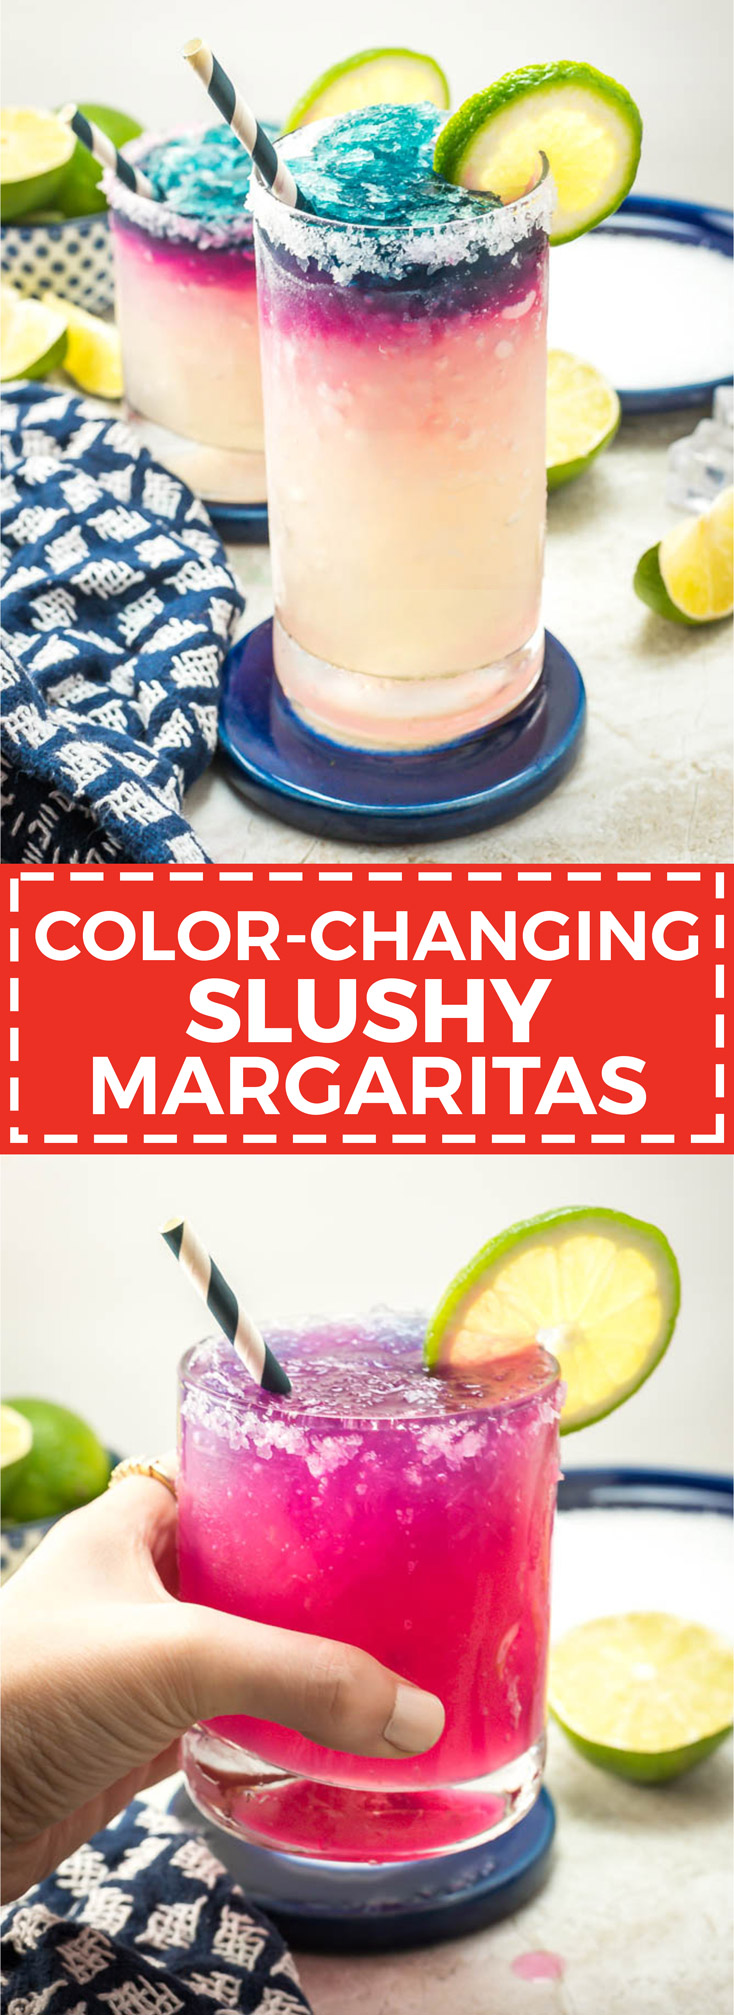 Color-Changing Slushy Margaritas. This recipe uses a secret ingredient to create color-changing blue ice. It's also perfectly slushy with no blender required! | hostthetoast.com